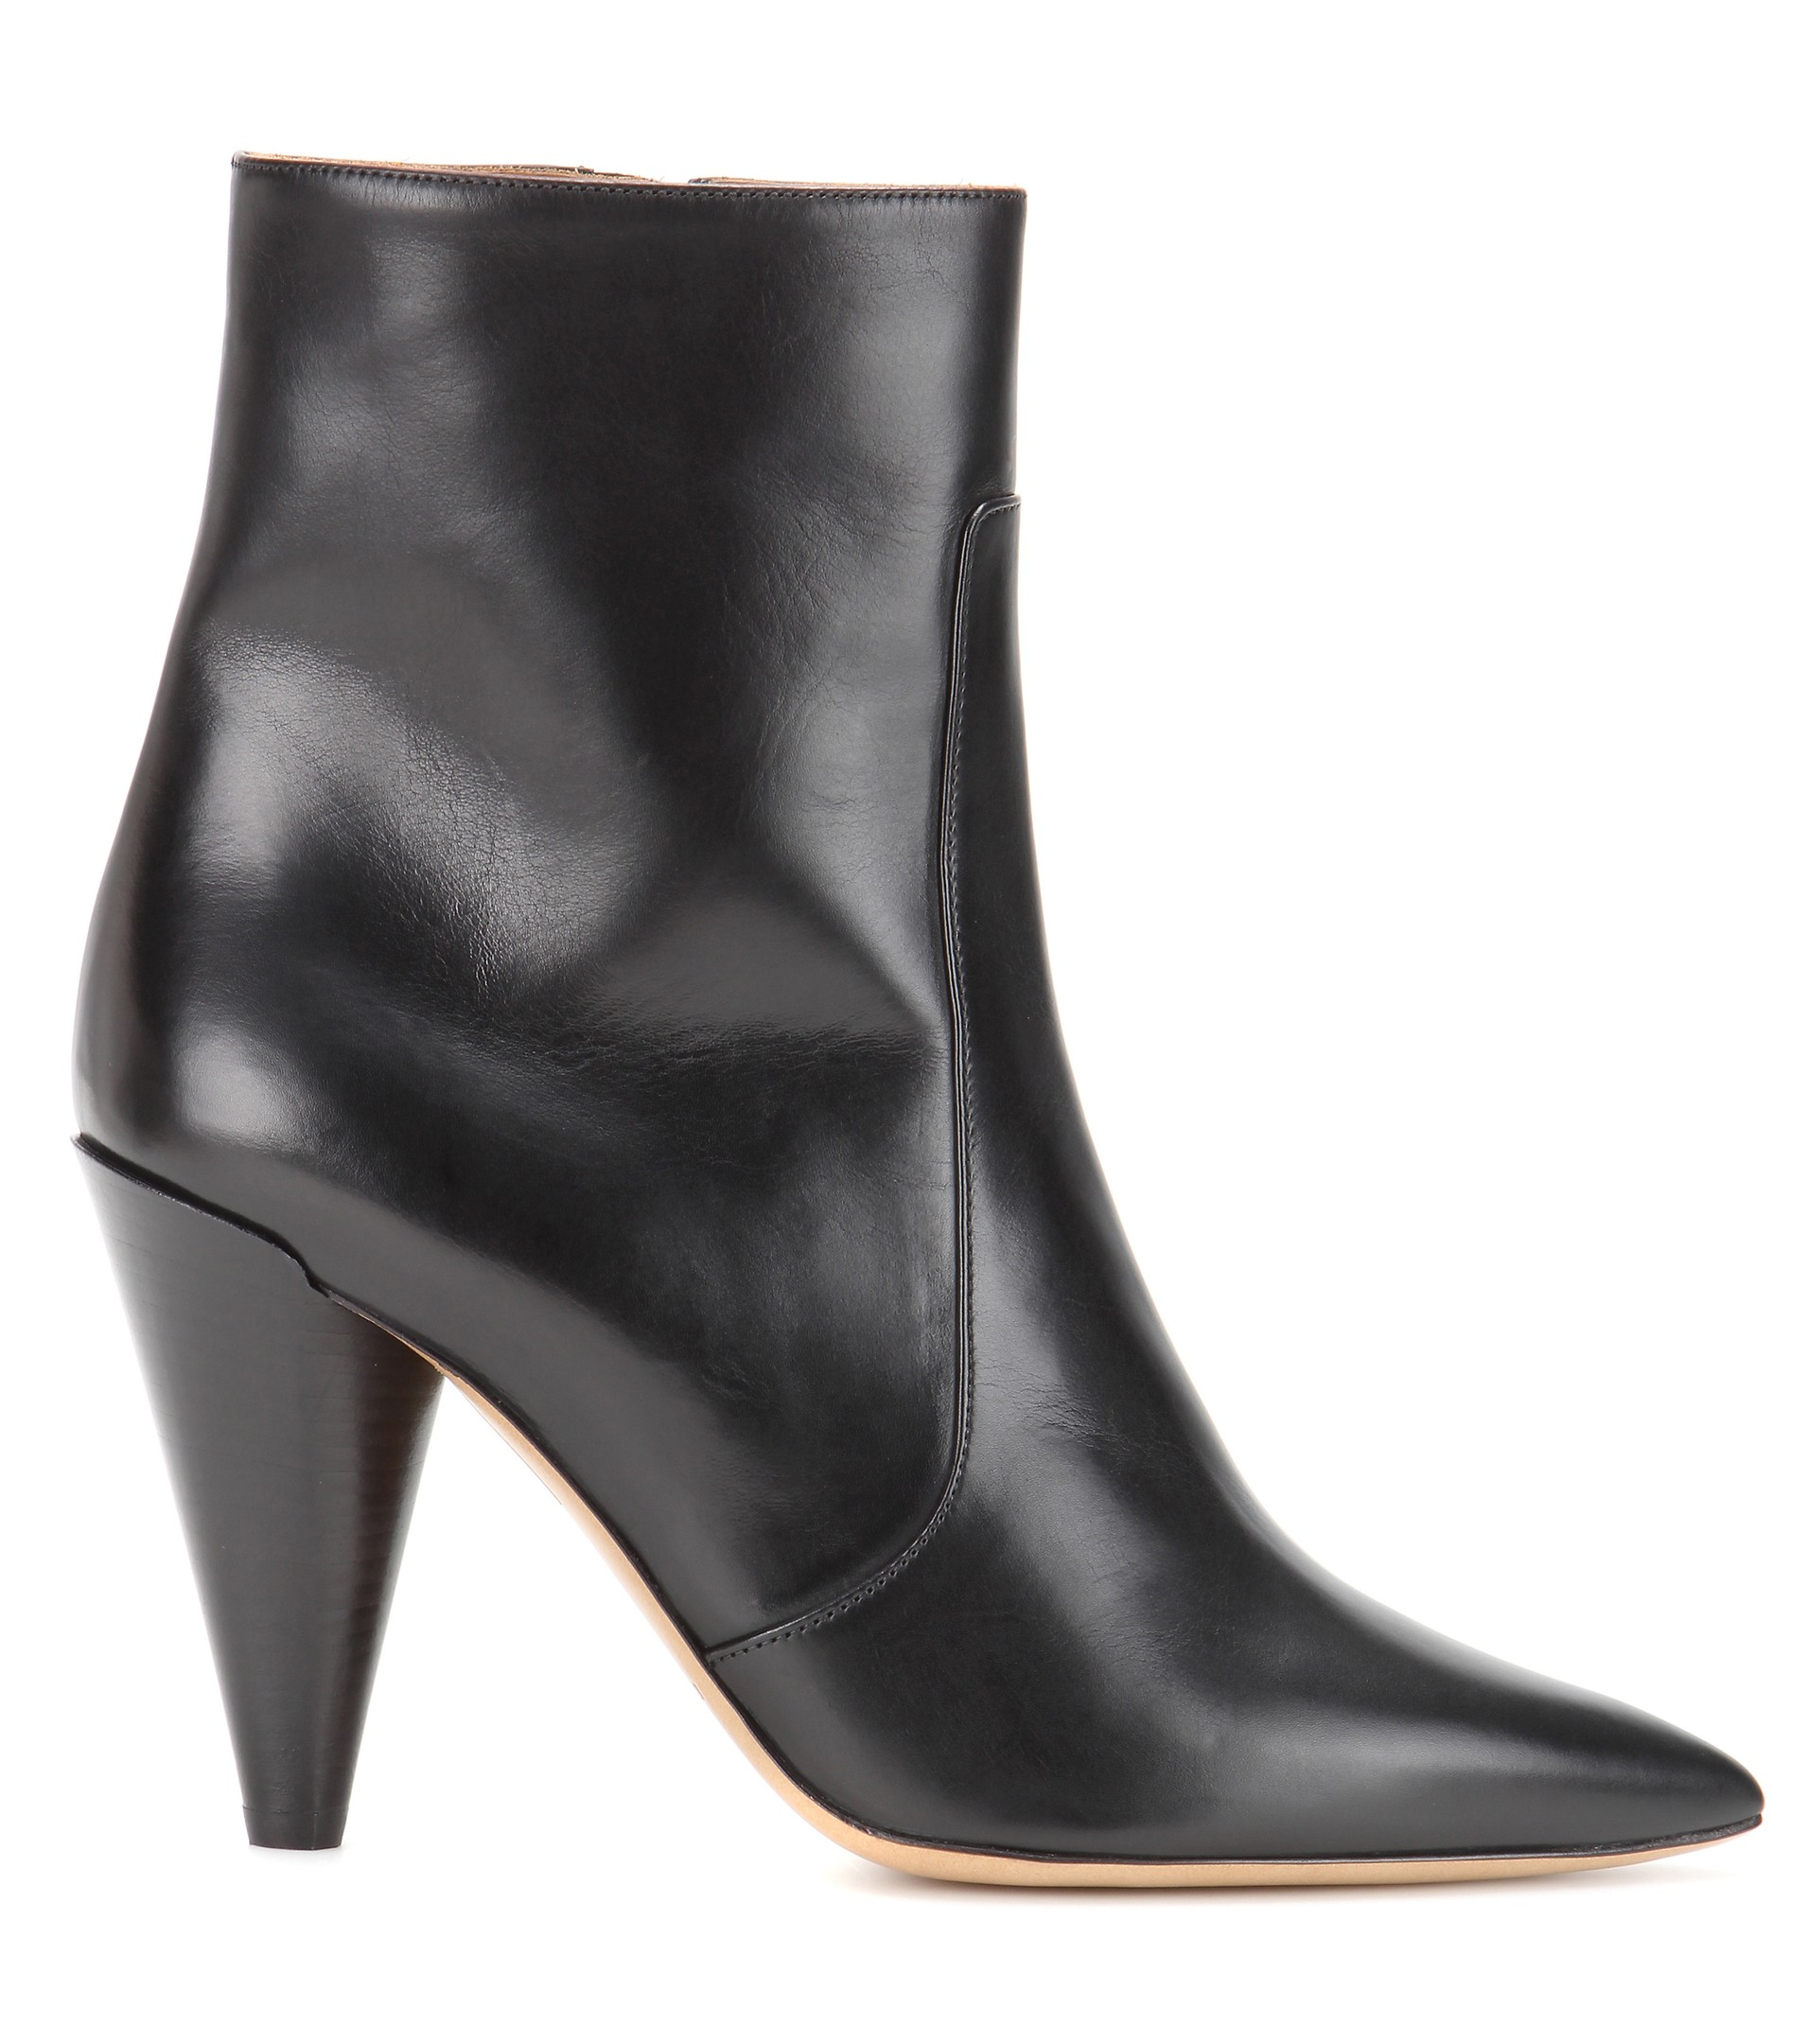 Isabel Marant Naelle Leather Ankle Boots in Black